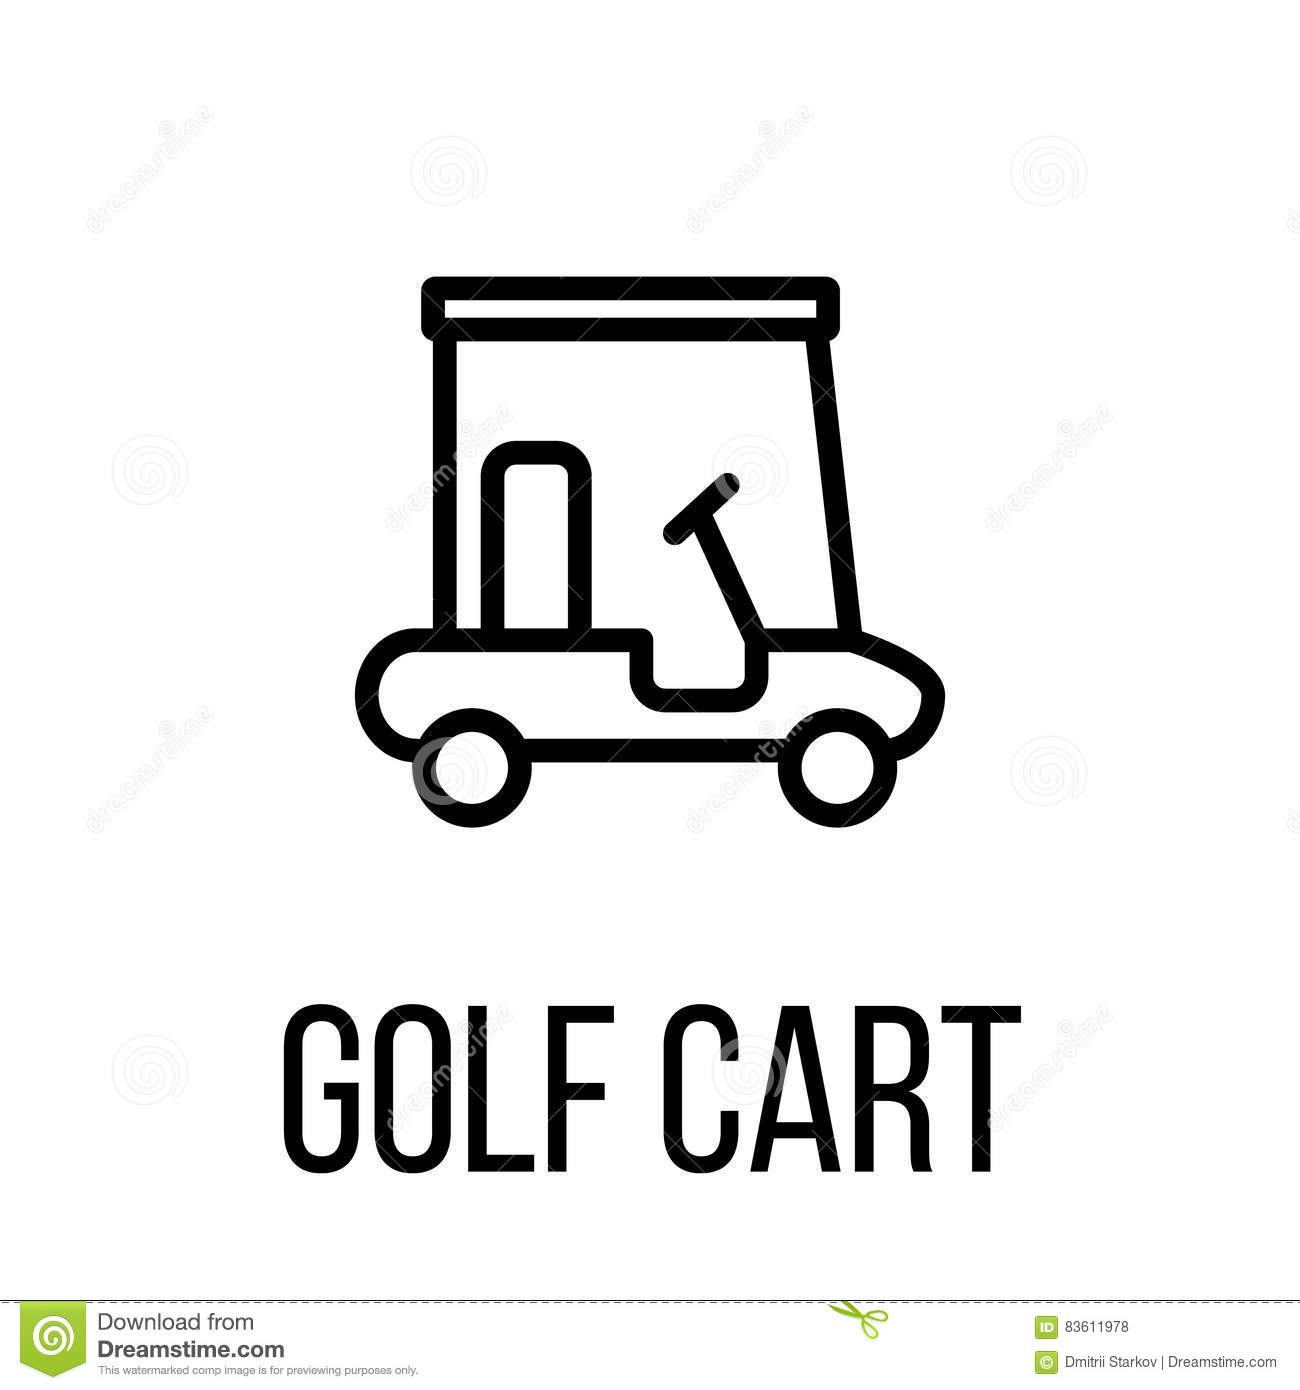 Car outline clipart moreover Royalty Free Stock Images Car Part Icon Set 7 Image23738079 as well Stock Illustration Golf Cart Icon Logo Modern Line Style High Quality Black Outline Pictogram Web Site Design Mobile Apps Vector Image83611978 as well Car Vehicle Draw Automobile Motor 34762 likewise Car Motor Sketch. on car motor clip art